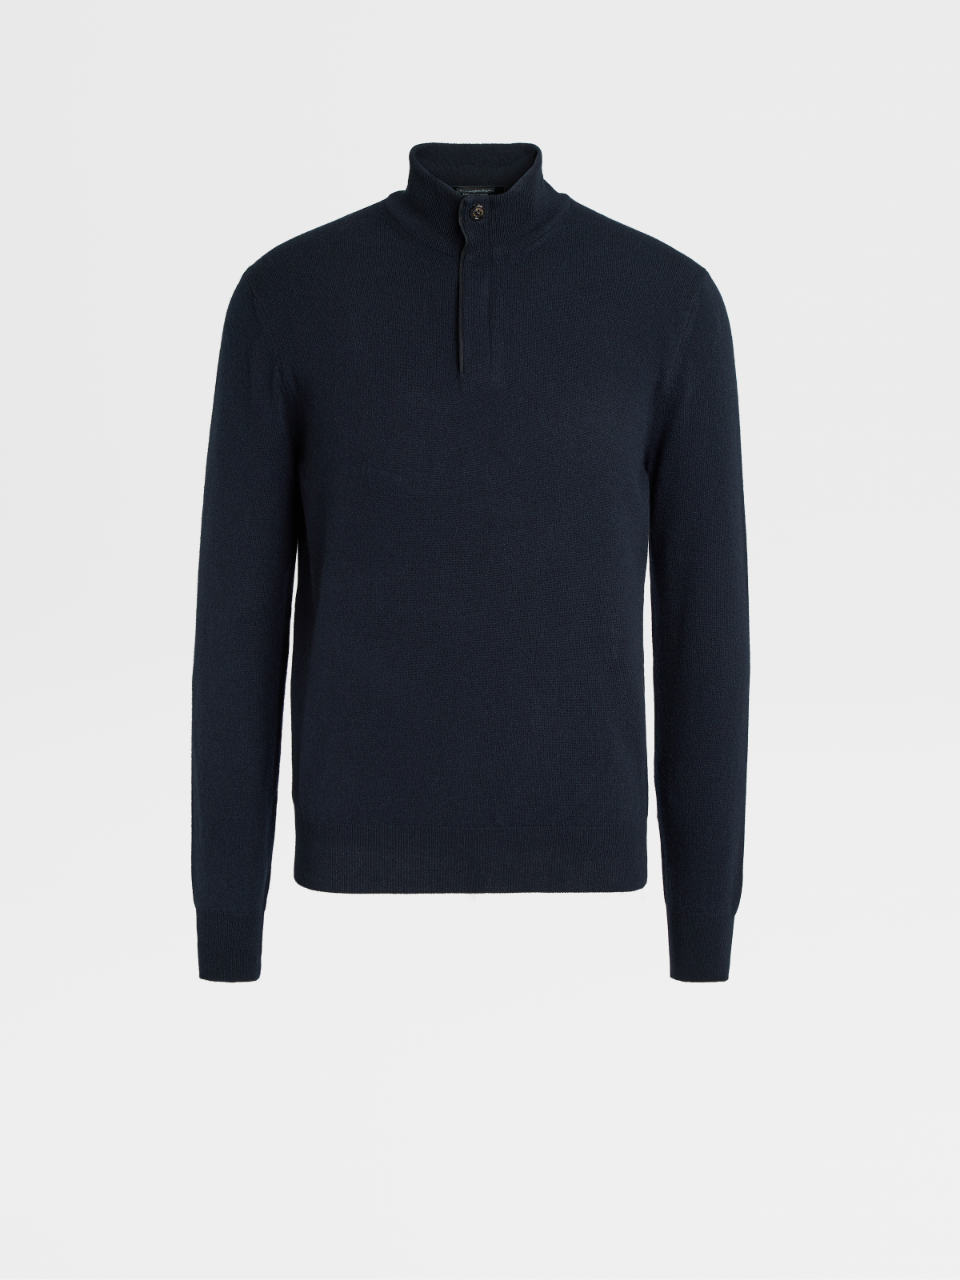 Blue Premium Cashmere Sweater